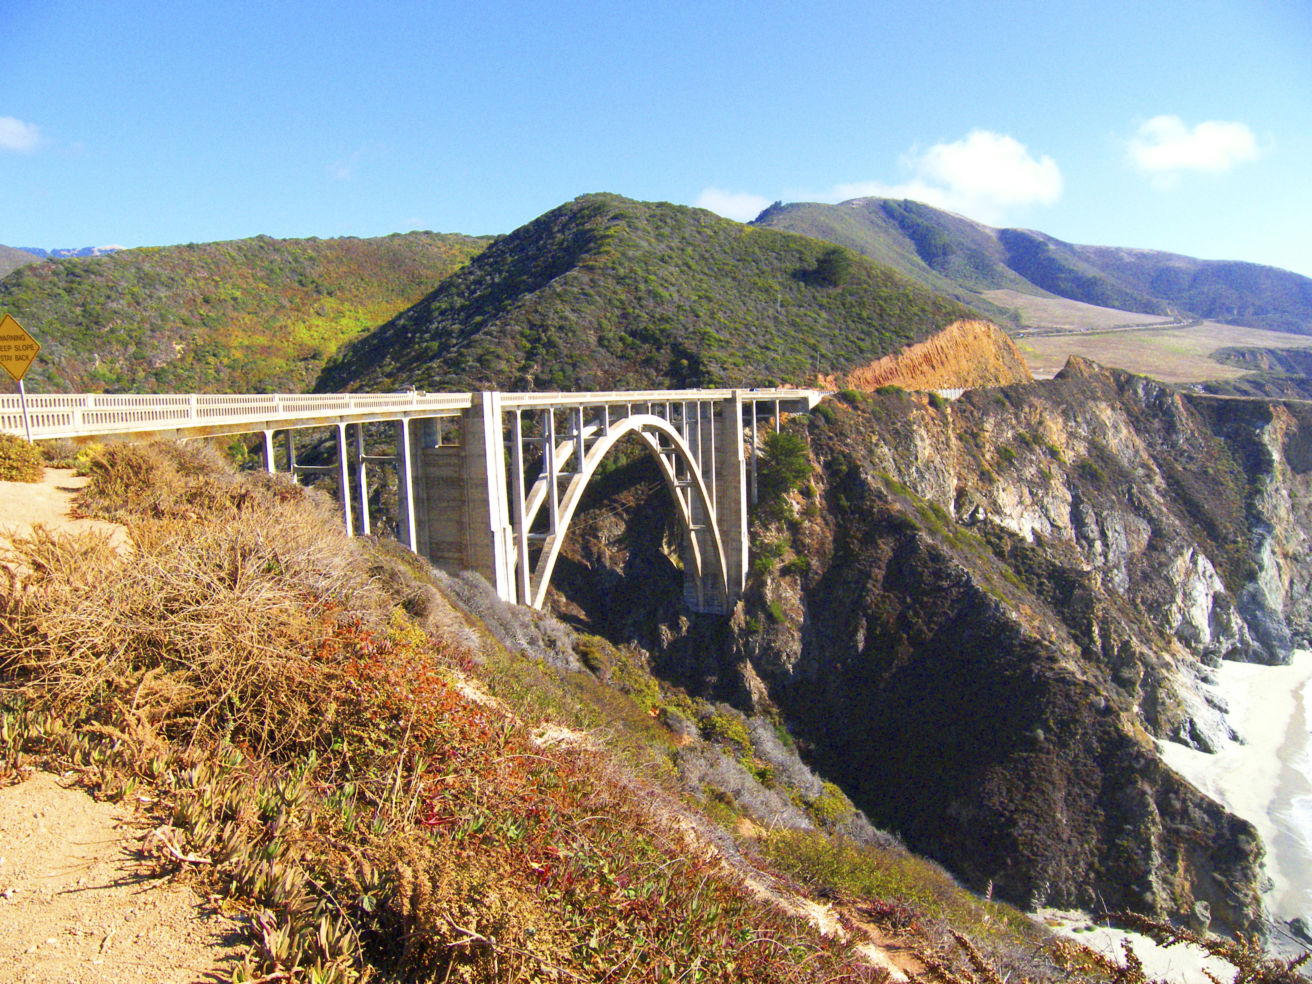 Bixby Bridge spanning Rainbow Canyon, Monterey Peninsula